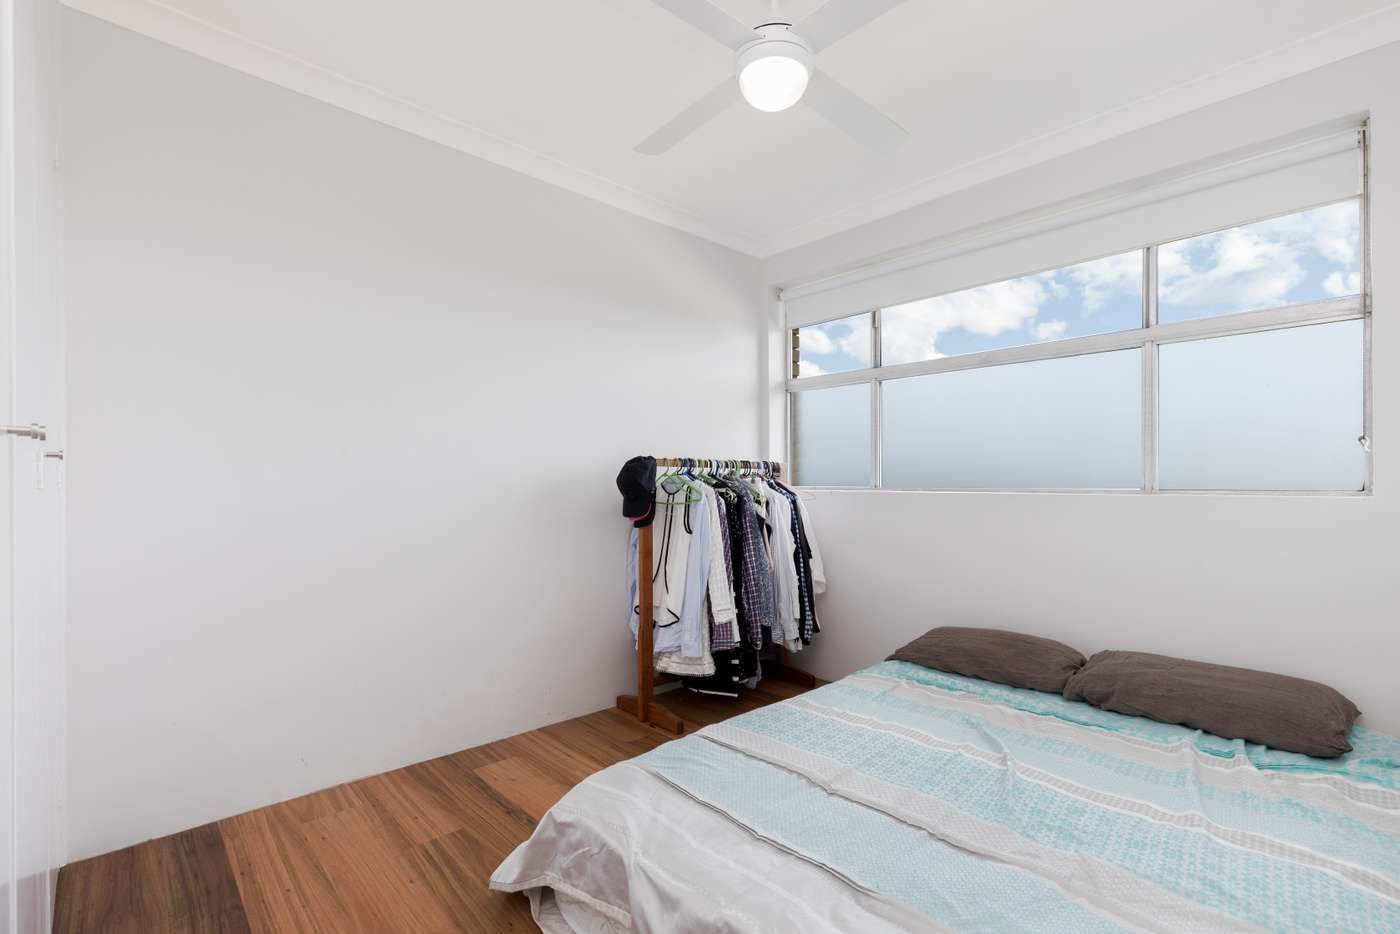 Sixth view of Homely unit listing, 28/15 Bellevue Terrace, St Lucia QLD 4067